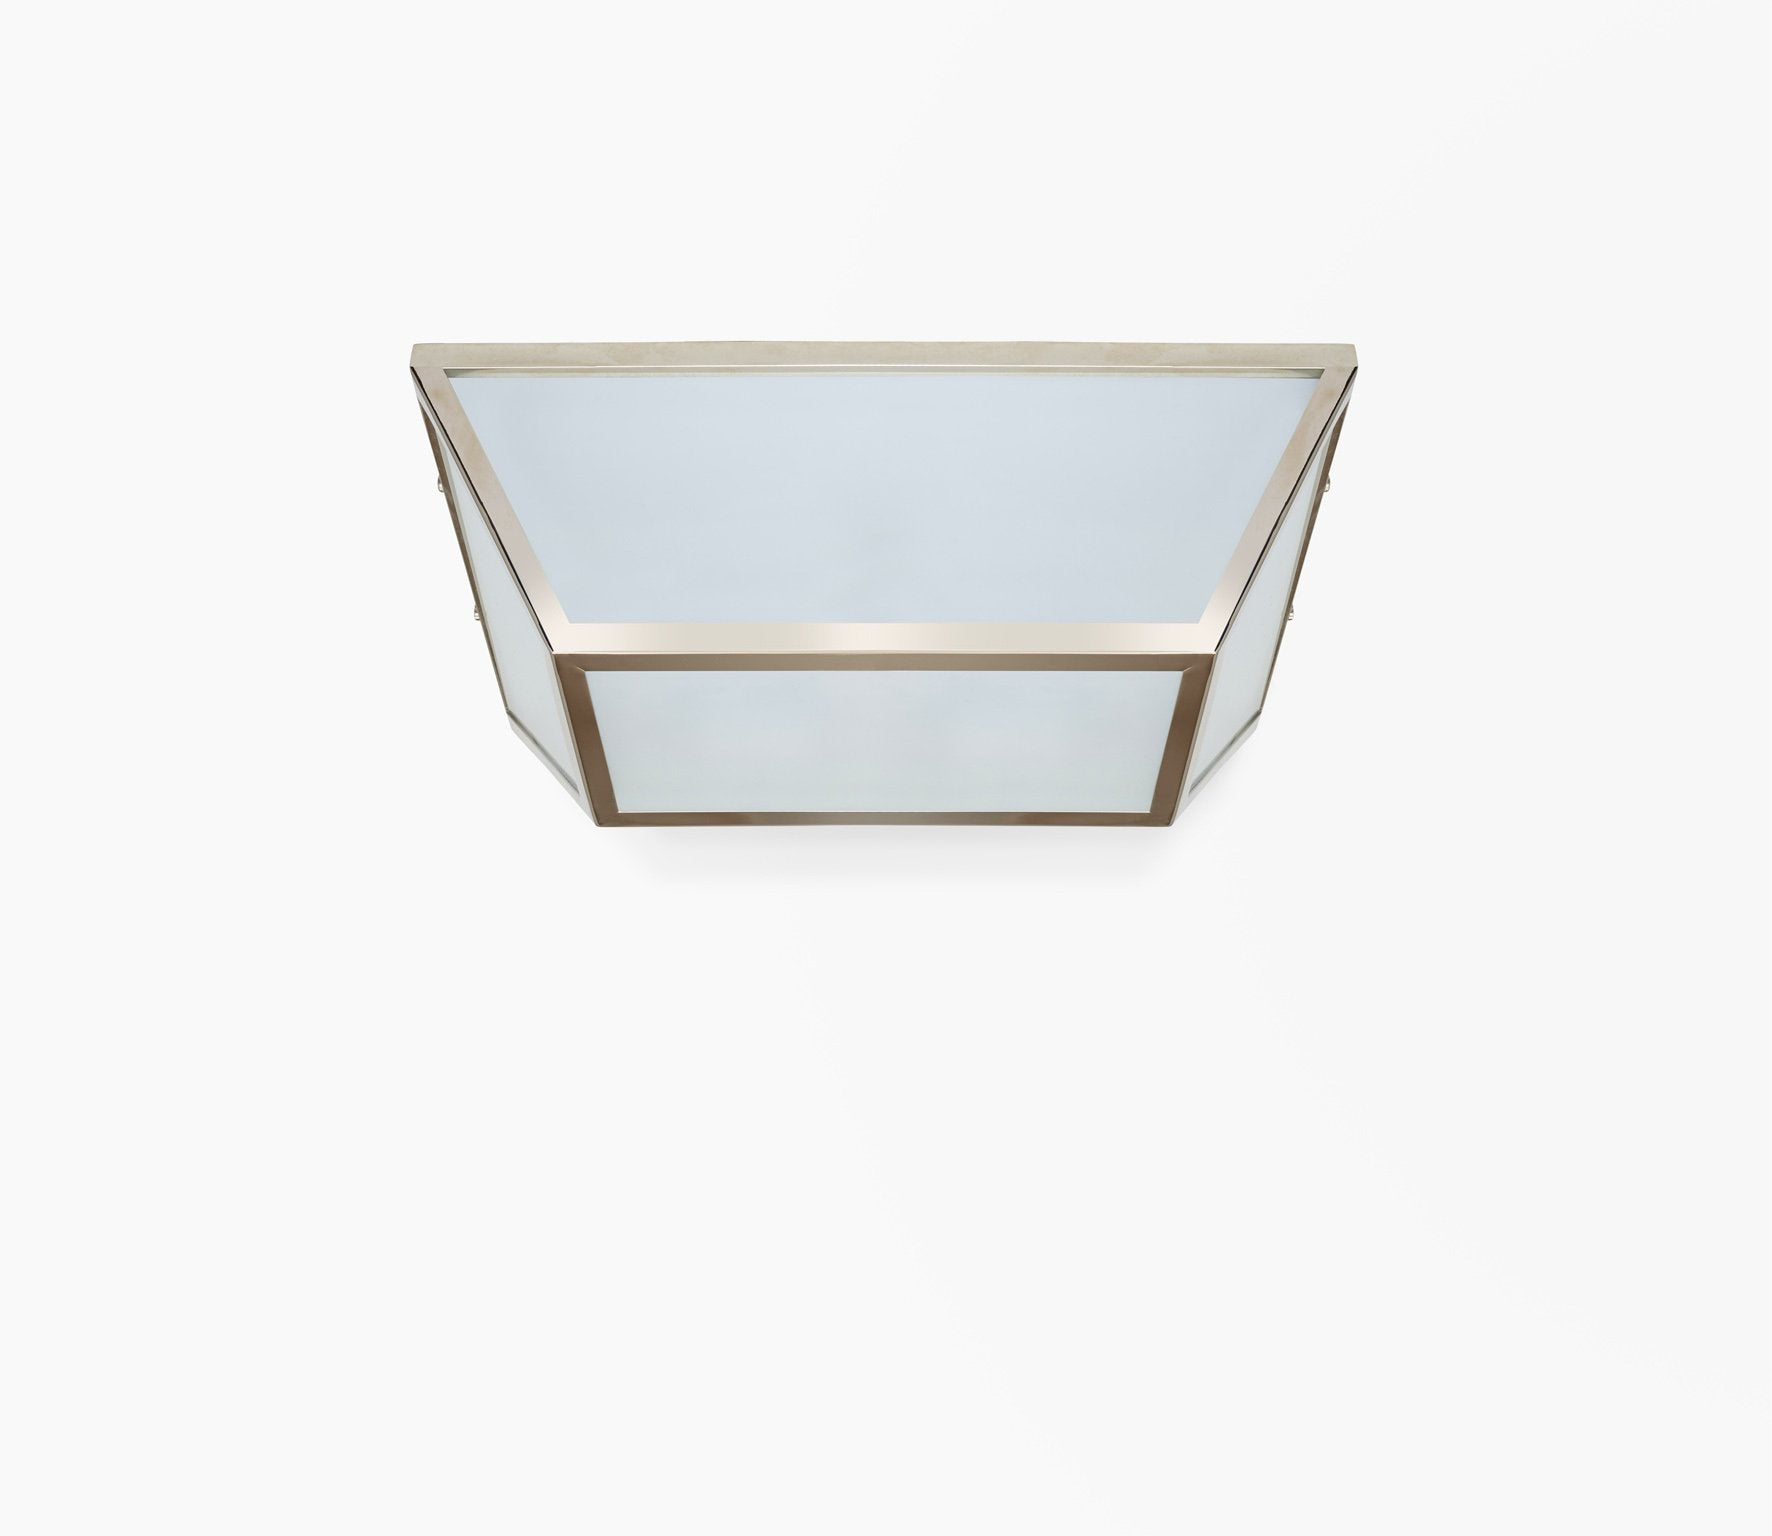 Strand Ceiling Light Product Image 2